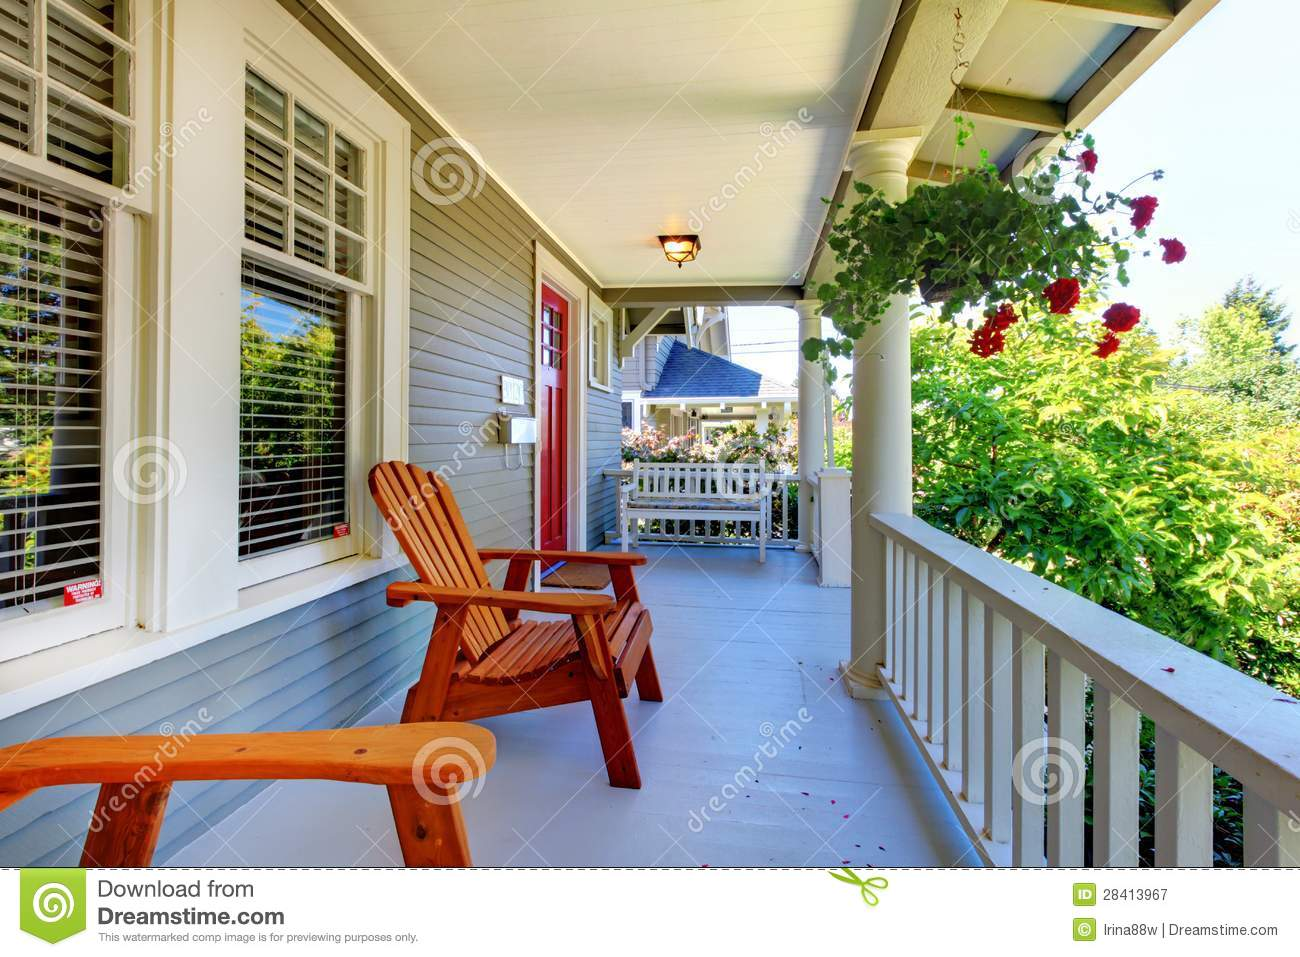 Difference between a porch balcony veranda patio and deck. p.